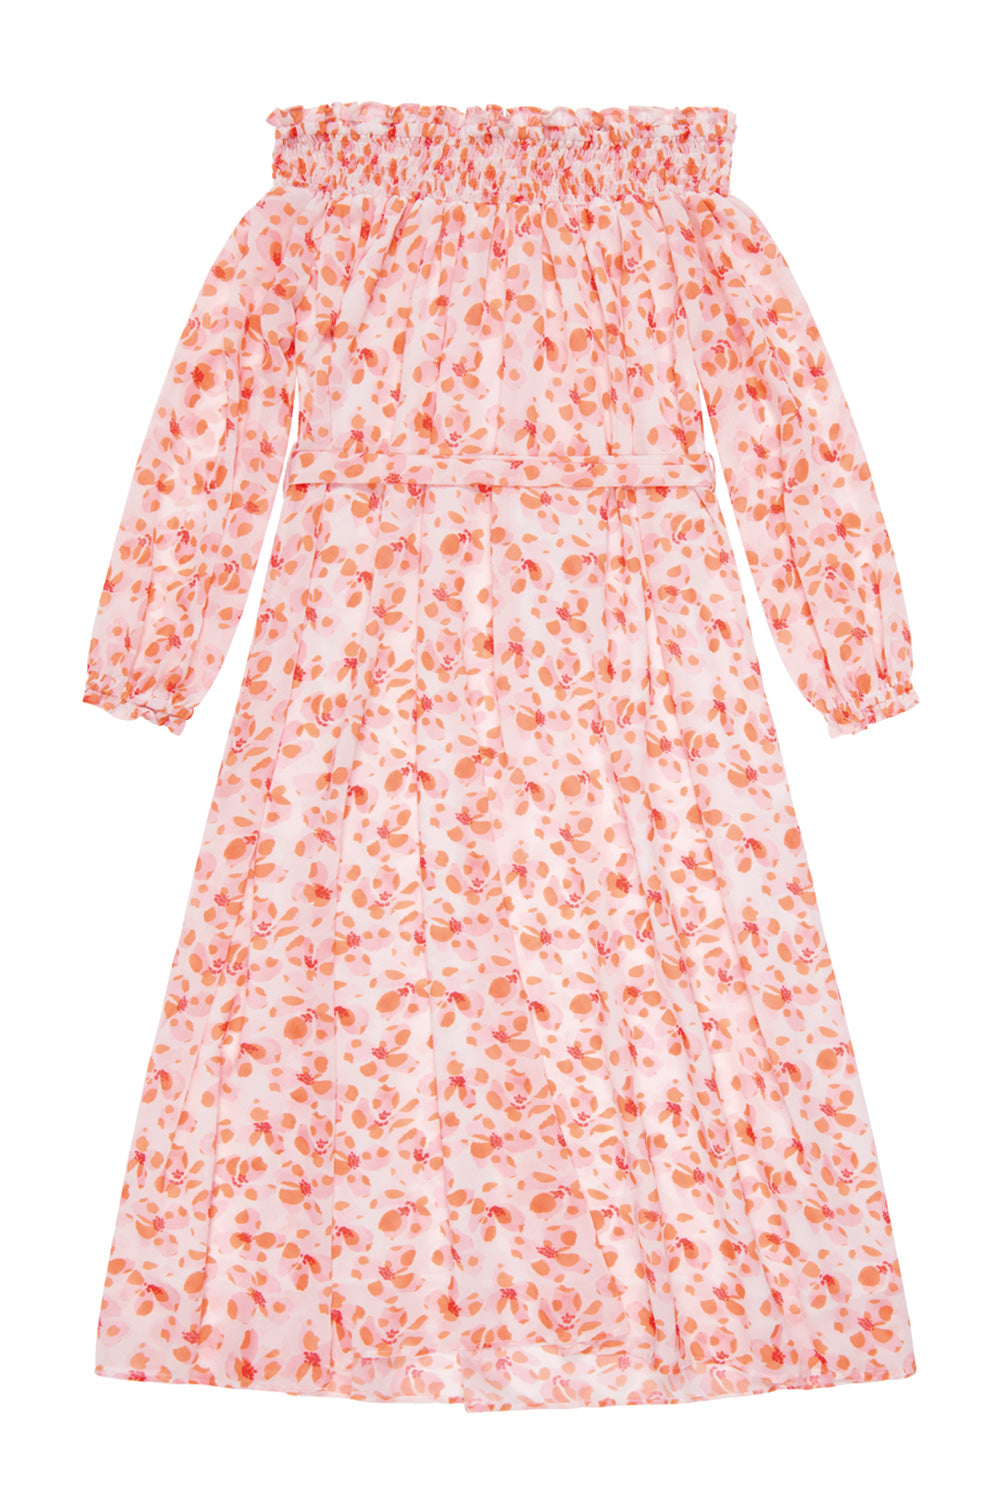 Narelle Floral Bardot Dress